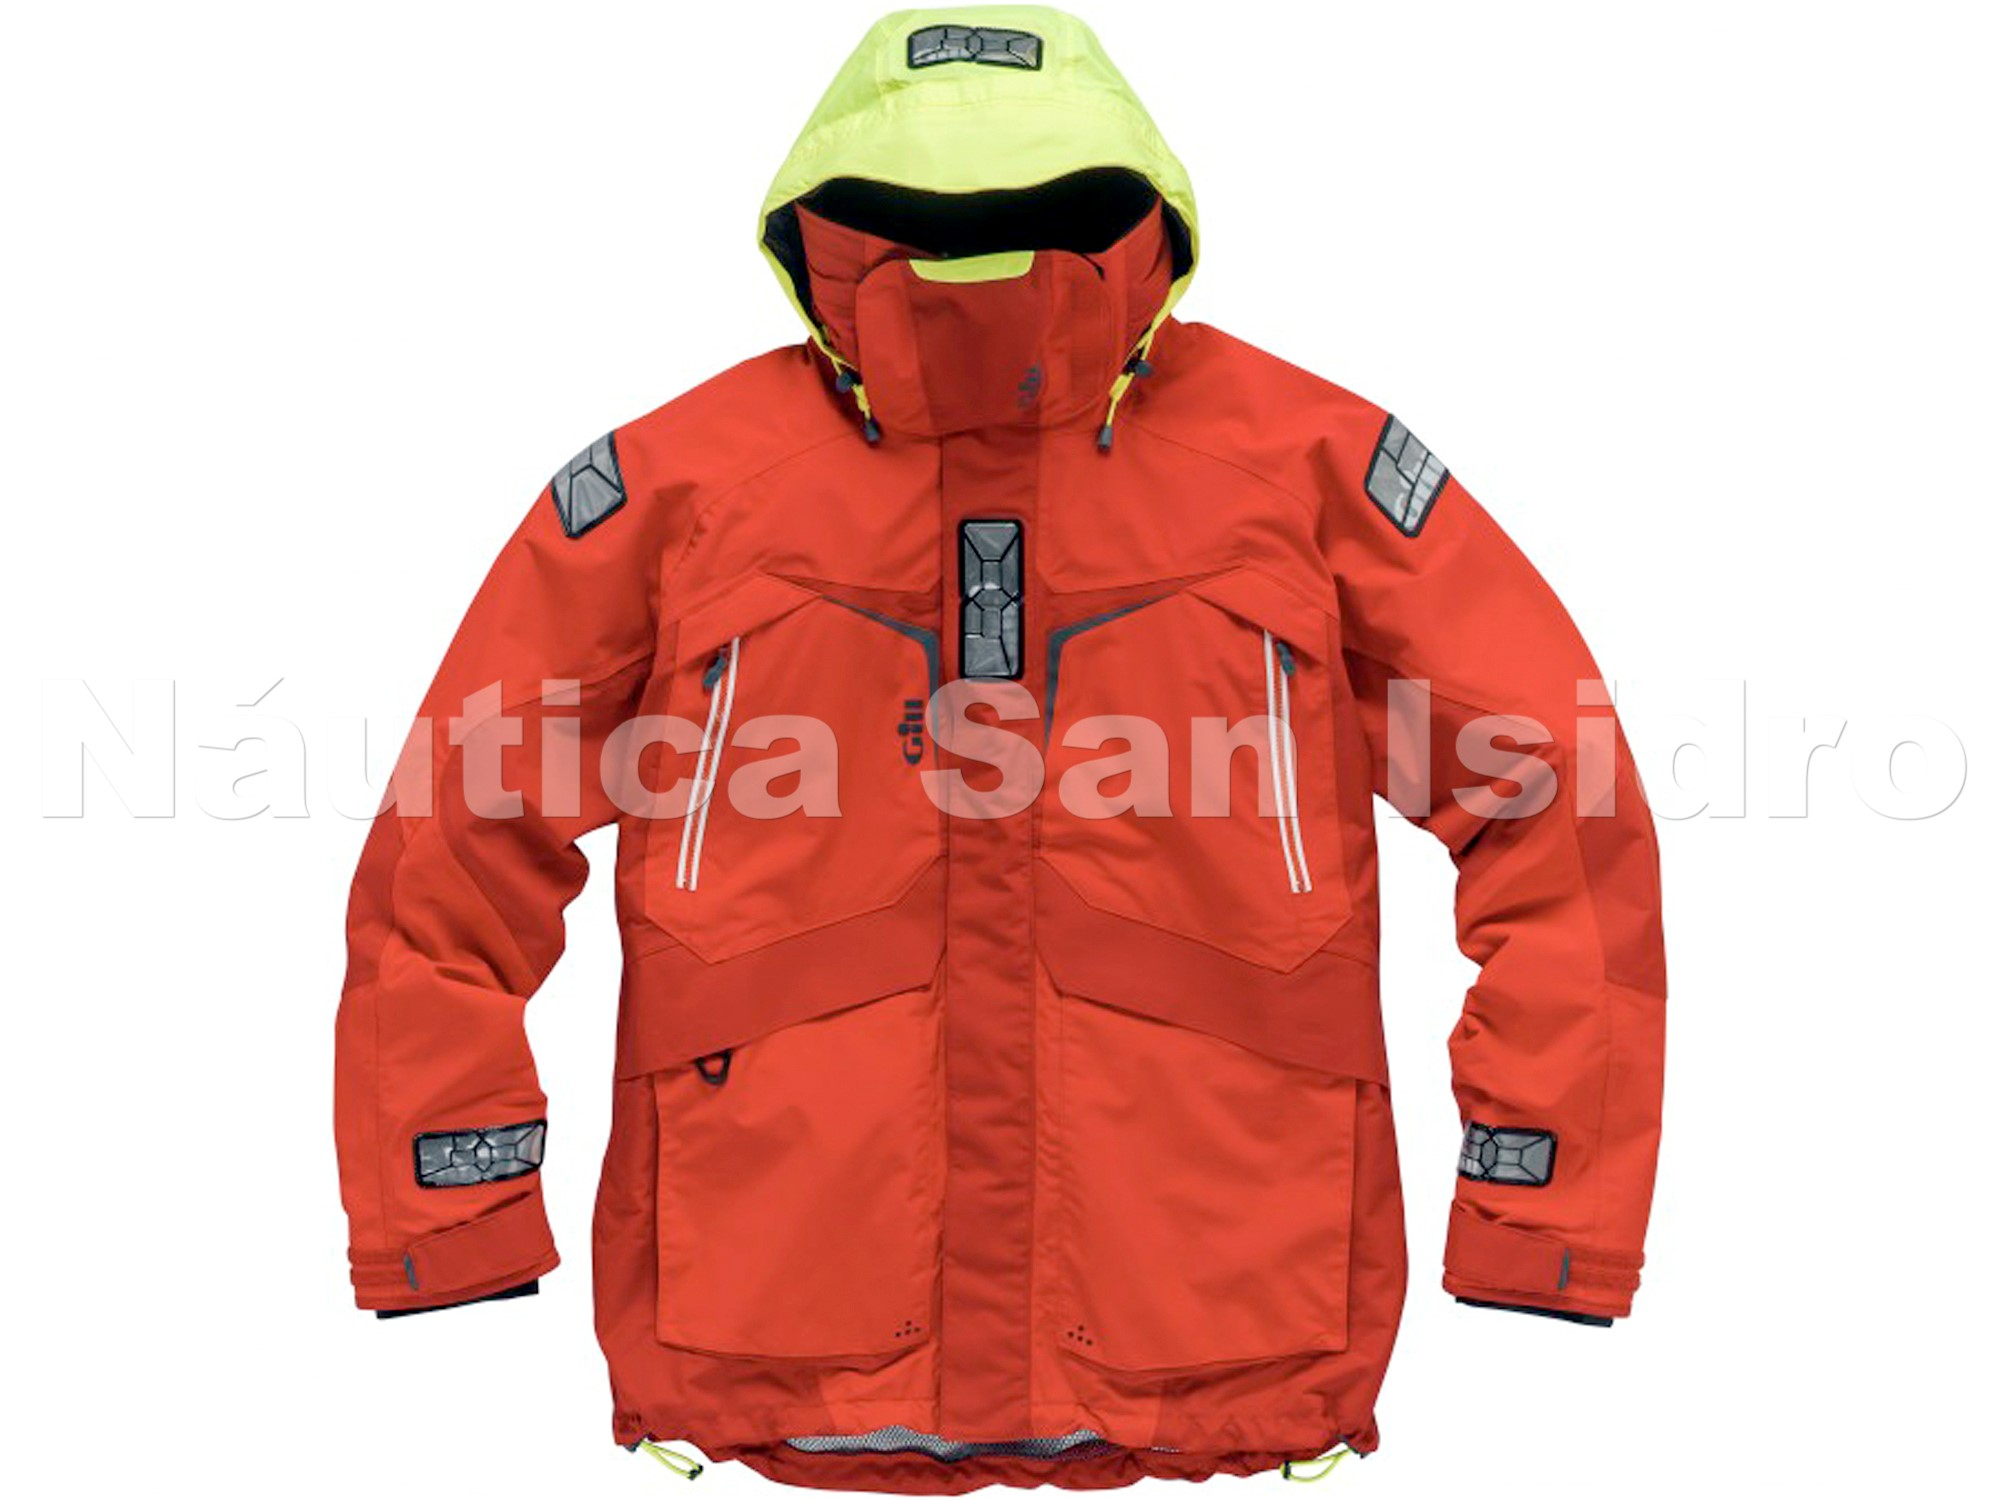 campera-gill-offshore-OS23-1.jpg